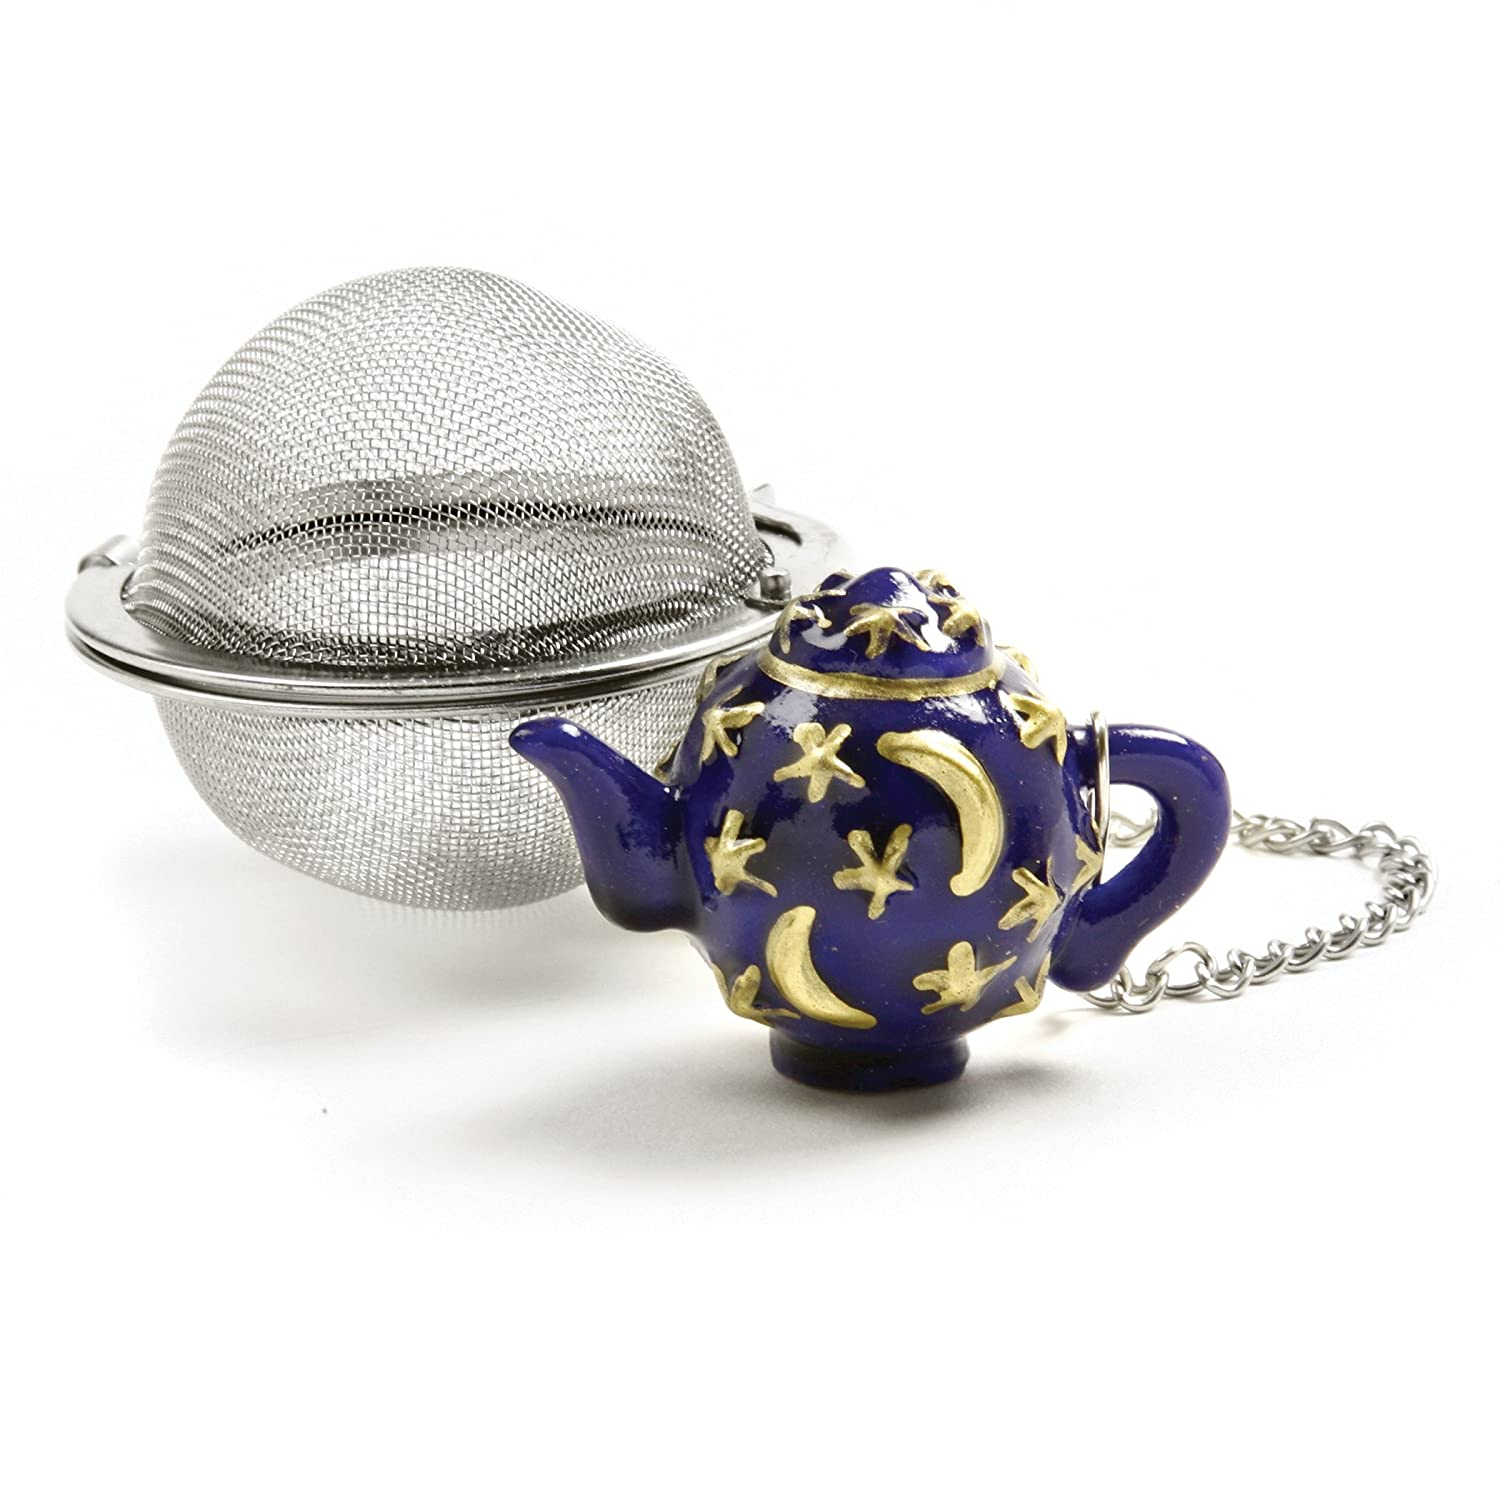 Norpro Stainless Steel 2-Inch Mesh Tea Infuser Ball with Teapot Weight 5509